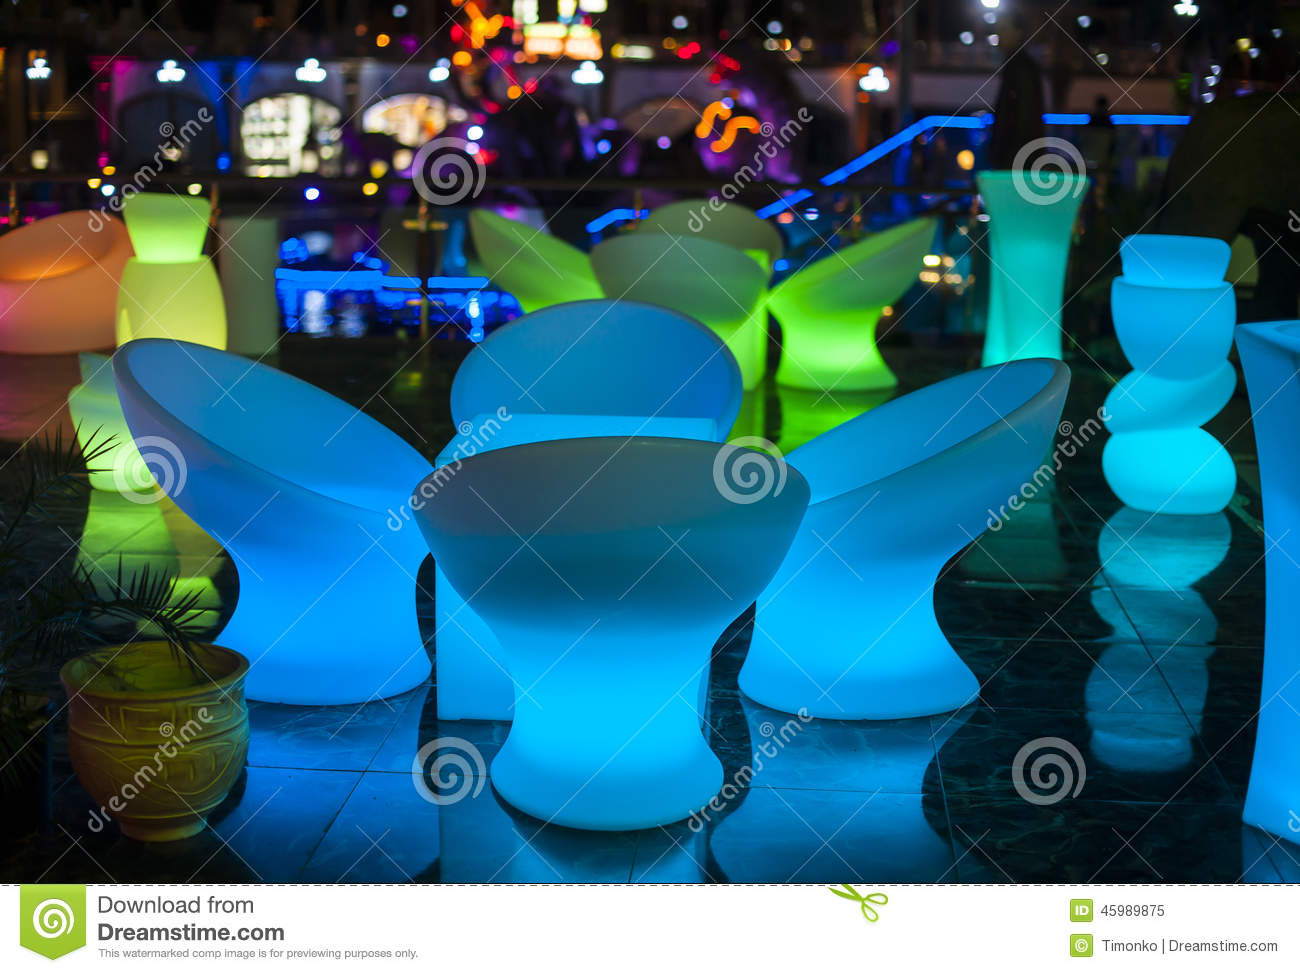 Glow Furniture Night Restaurant Glowing Furniture Light Stock Photo Image